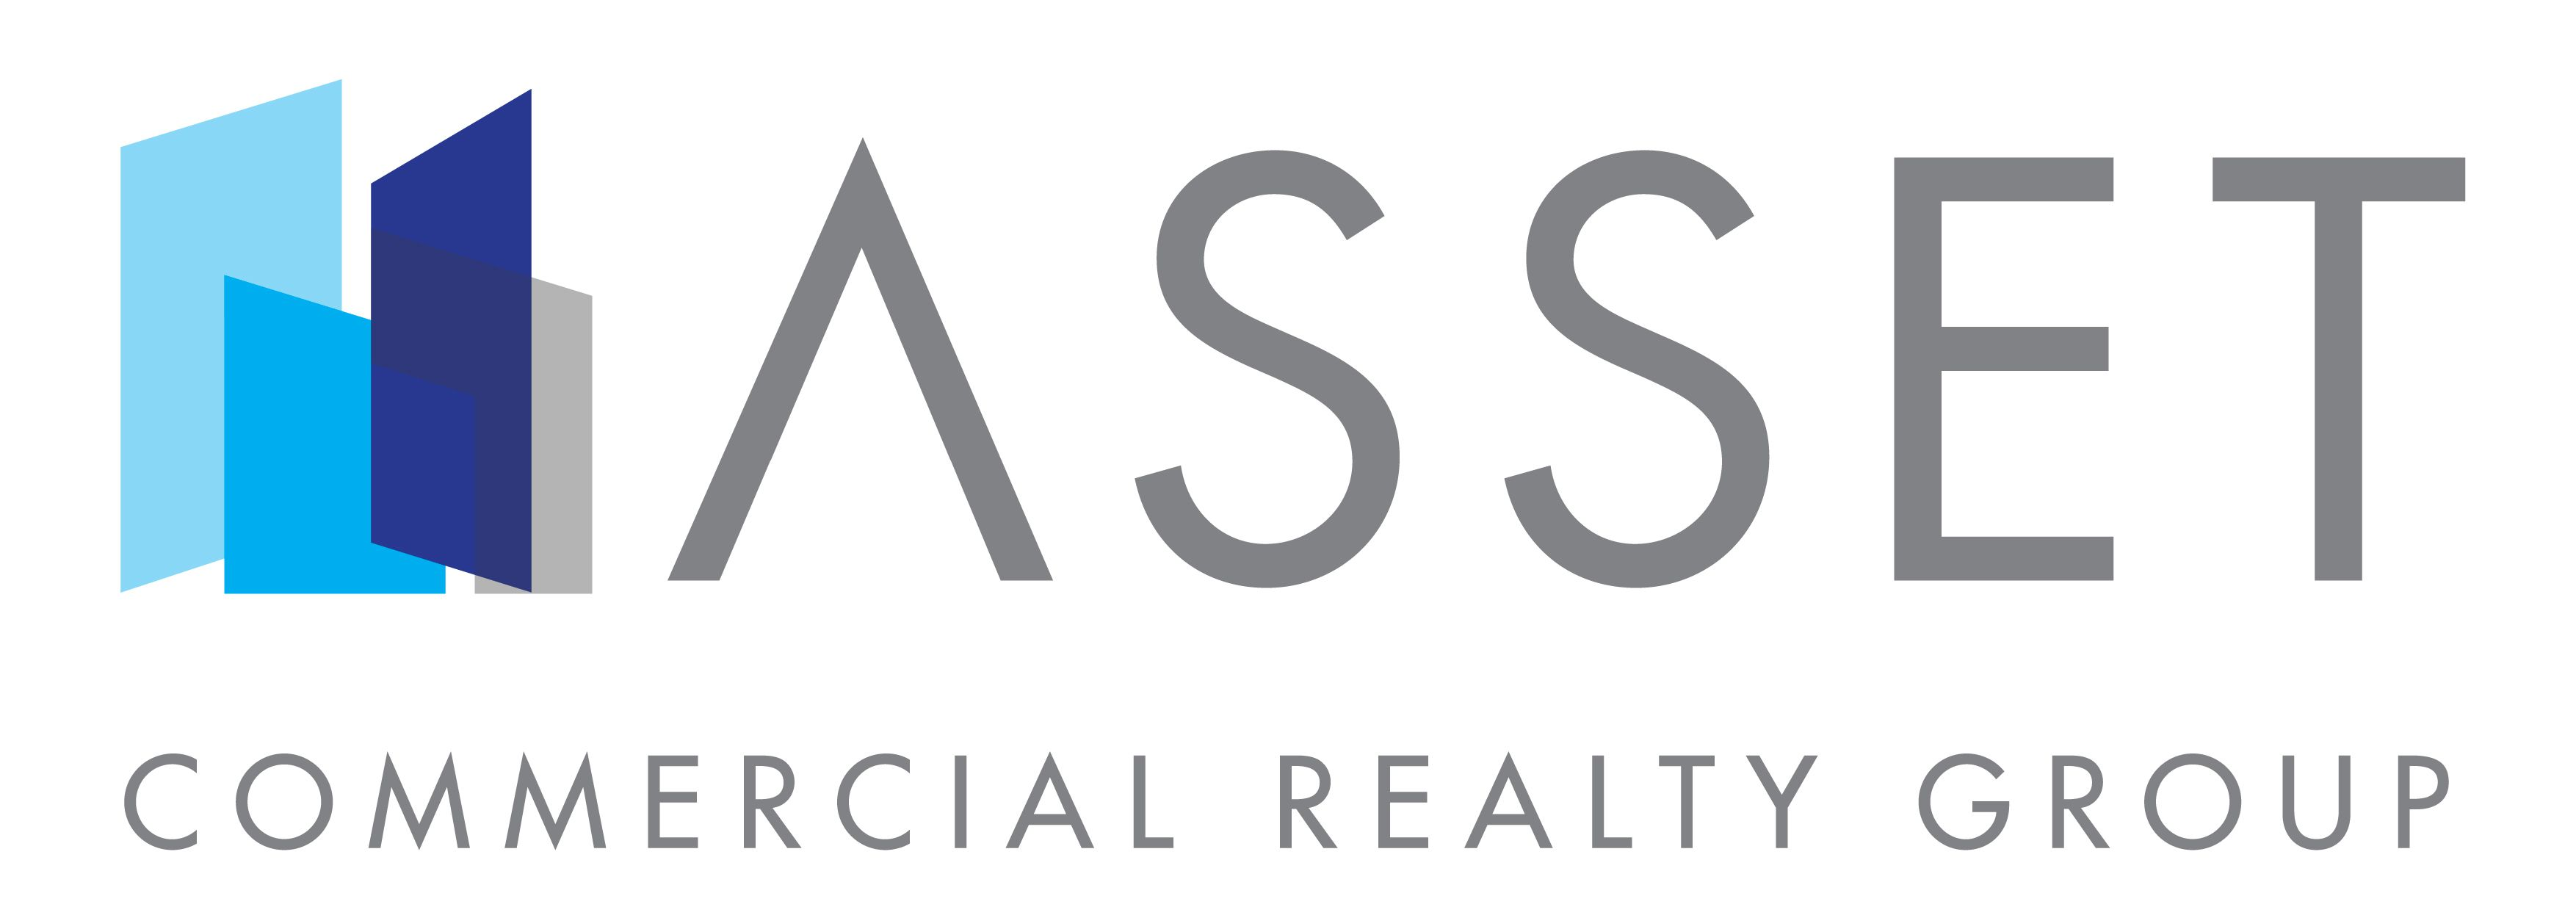 Asset Commercial Realty Group, LLC